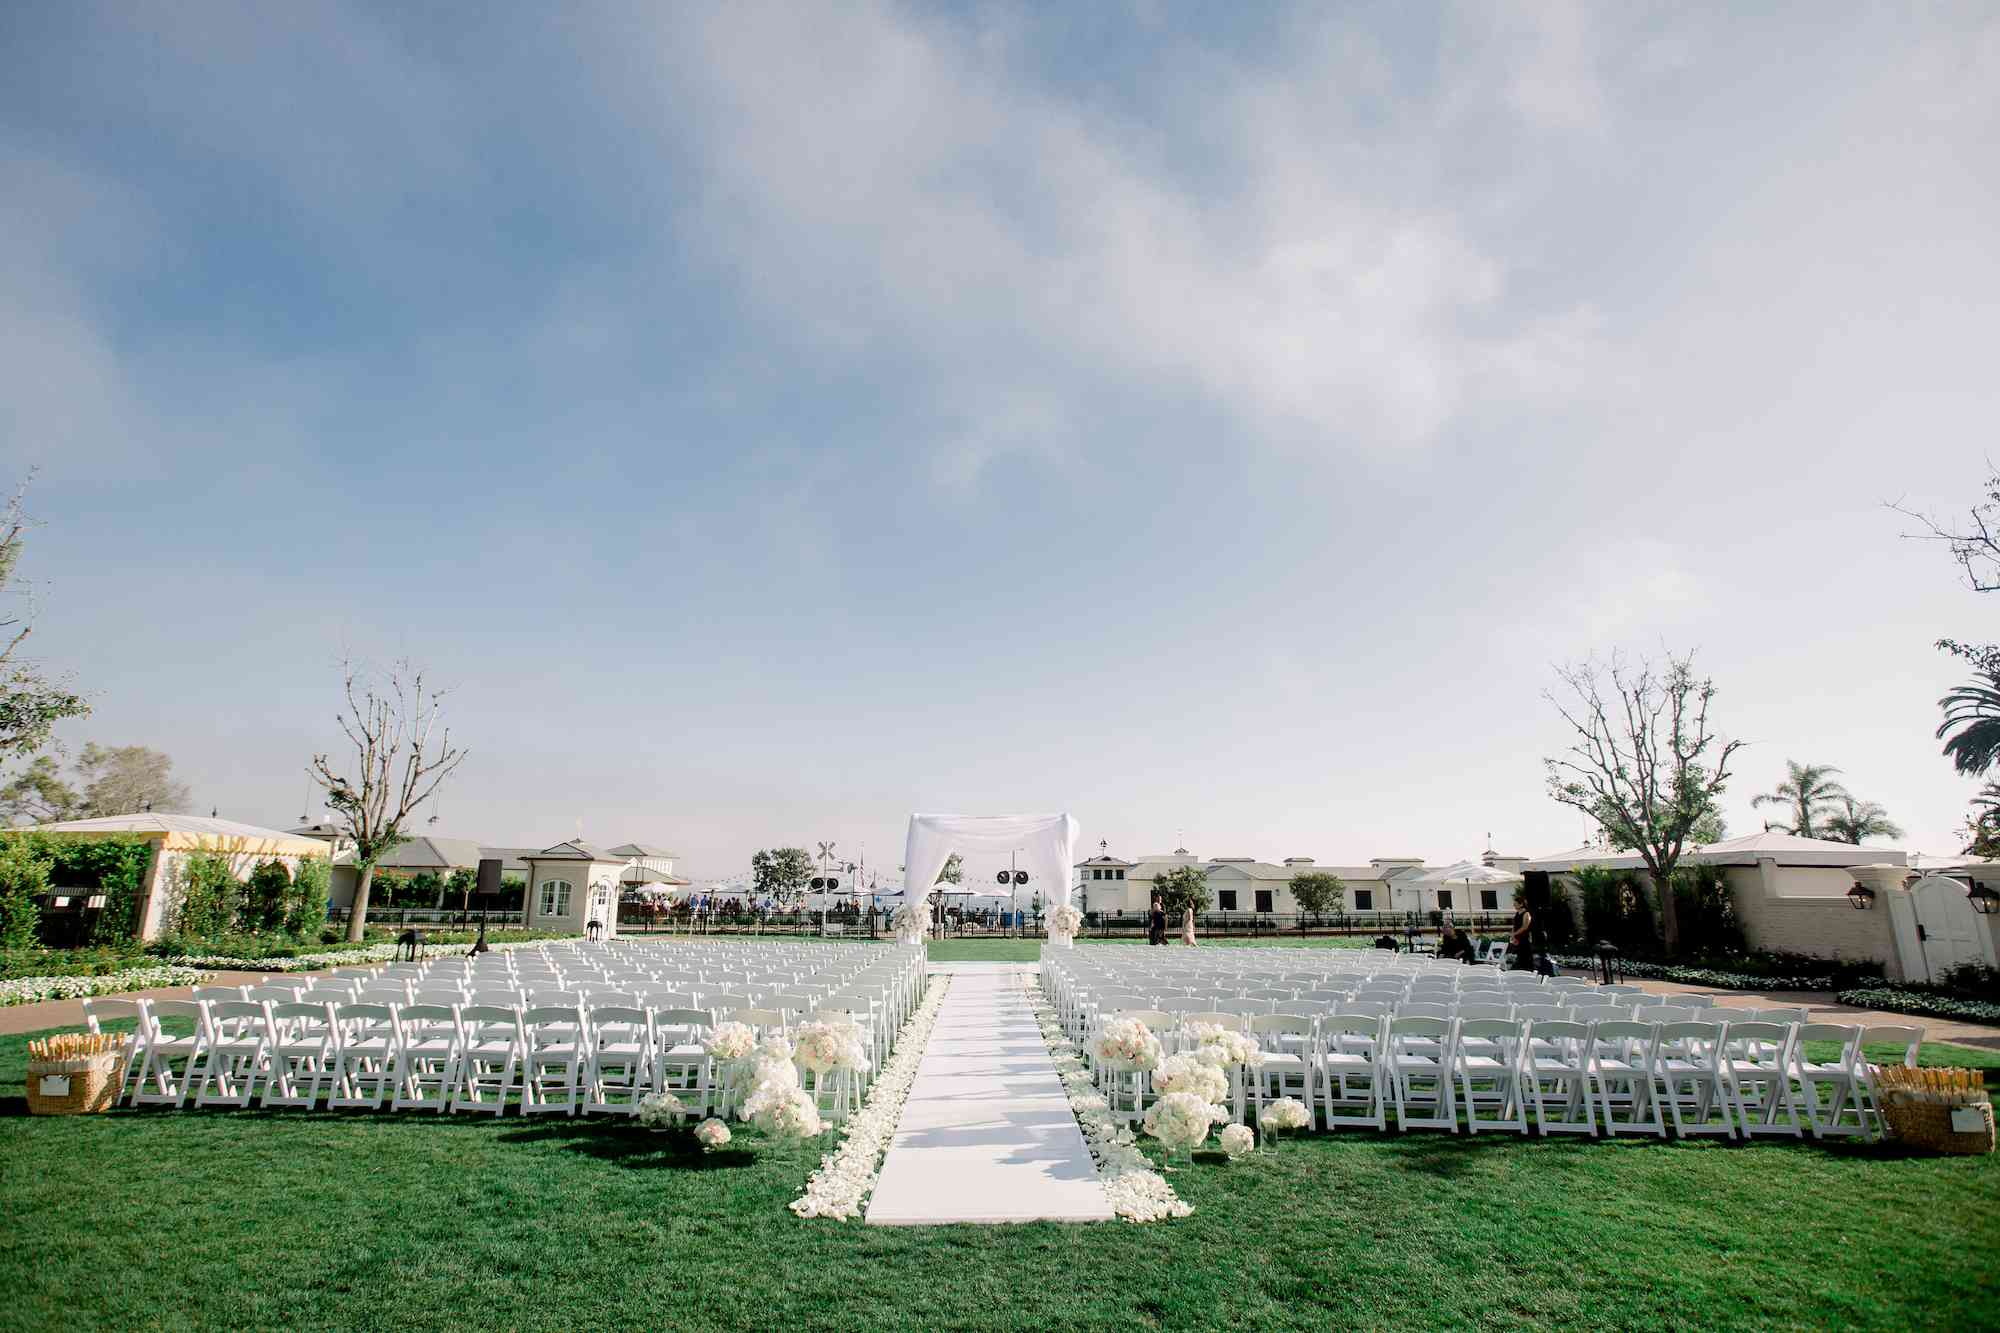 Backyard ceremony with white runner, white petals lining the aisle, and varying heights of glass vases filled with white flowers at the start